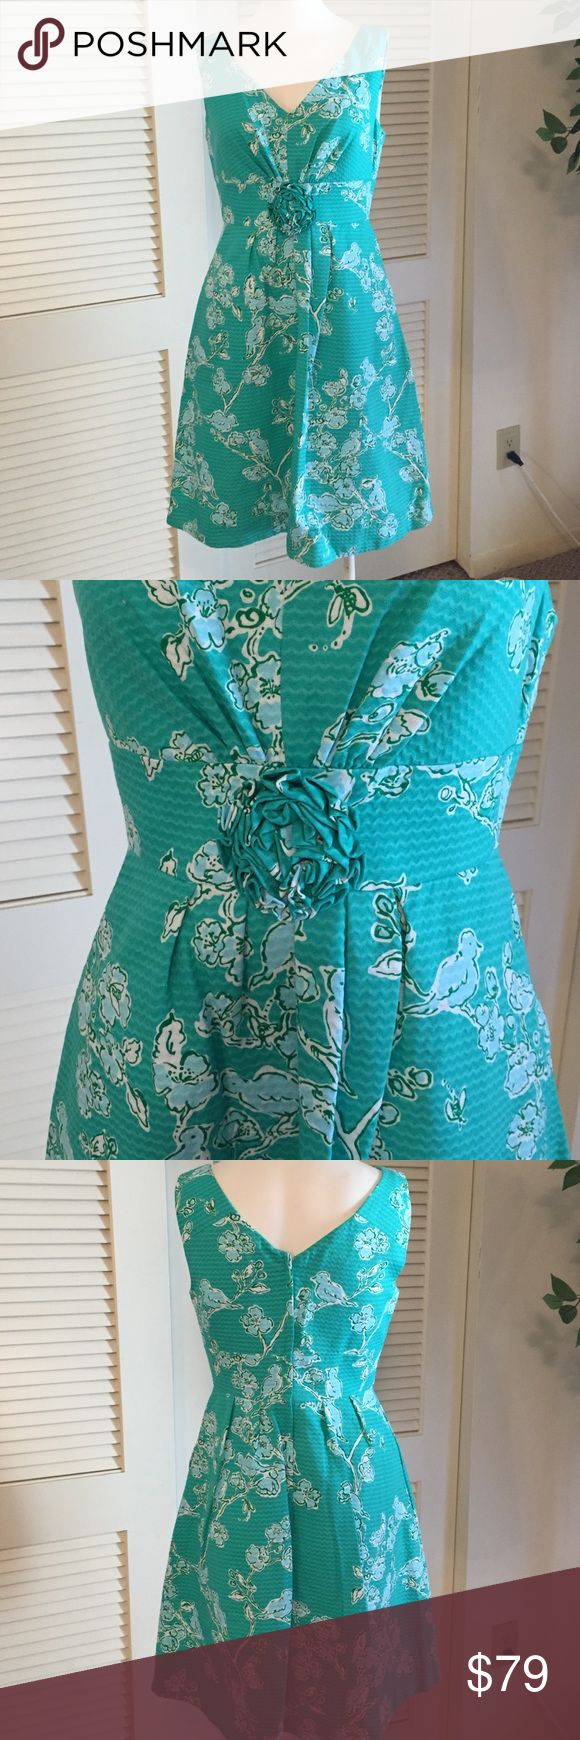 Lily Pulitzer dress Classic Lily Pulitzer dress. Mint green with light blue floral pattern. Flower at waist and pockets. So sweet 100%. Cotton Lilly Pulitzer Dresses